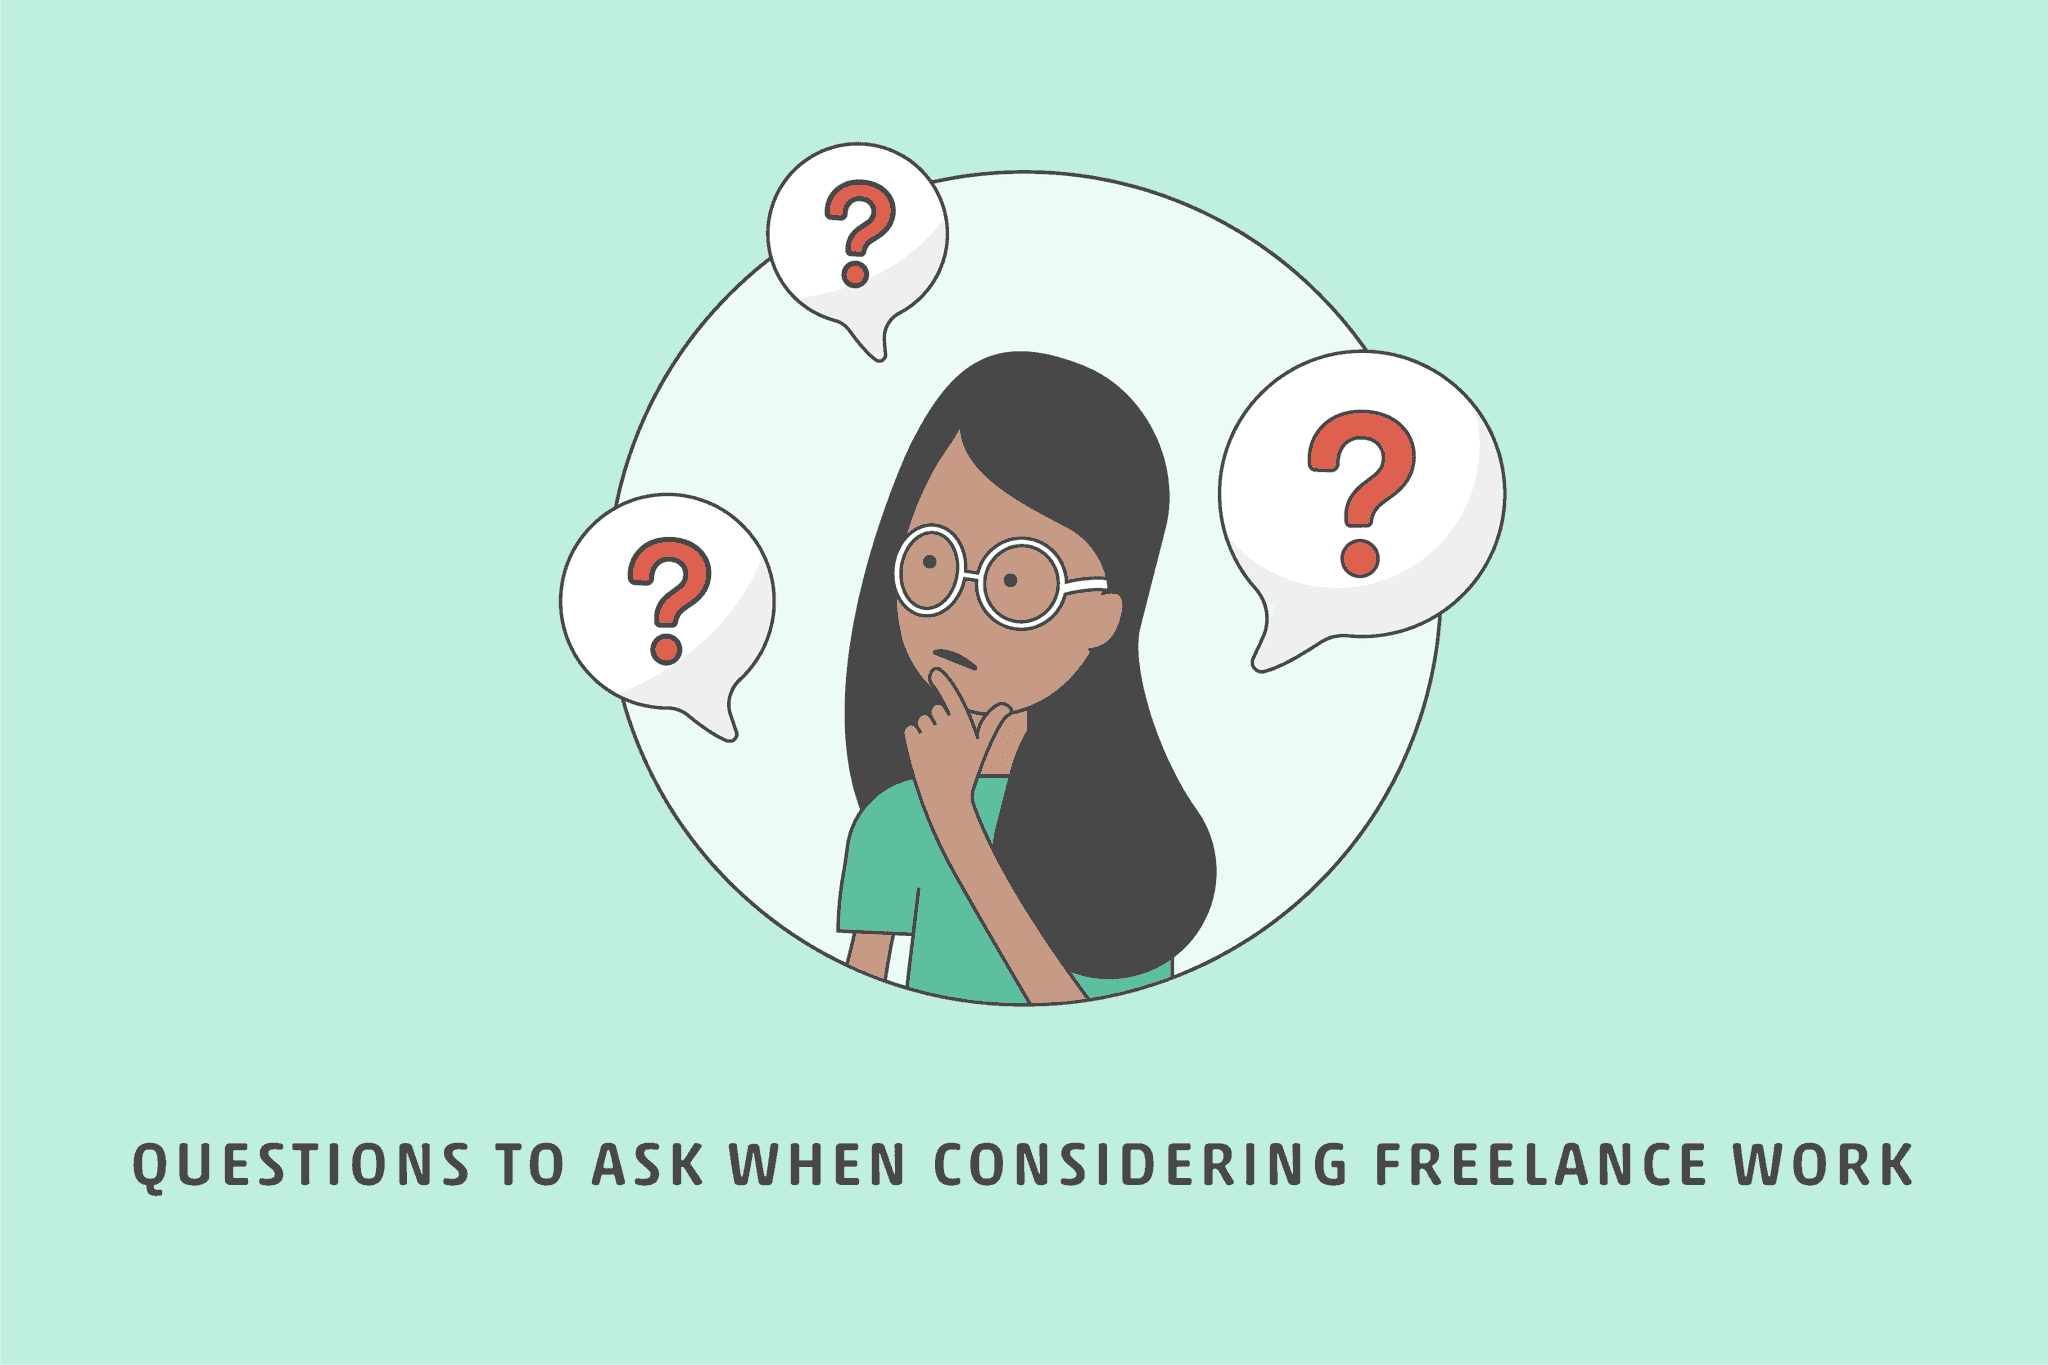 Questions to Ask When Considering Freelance Work